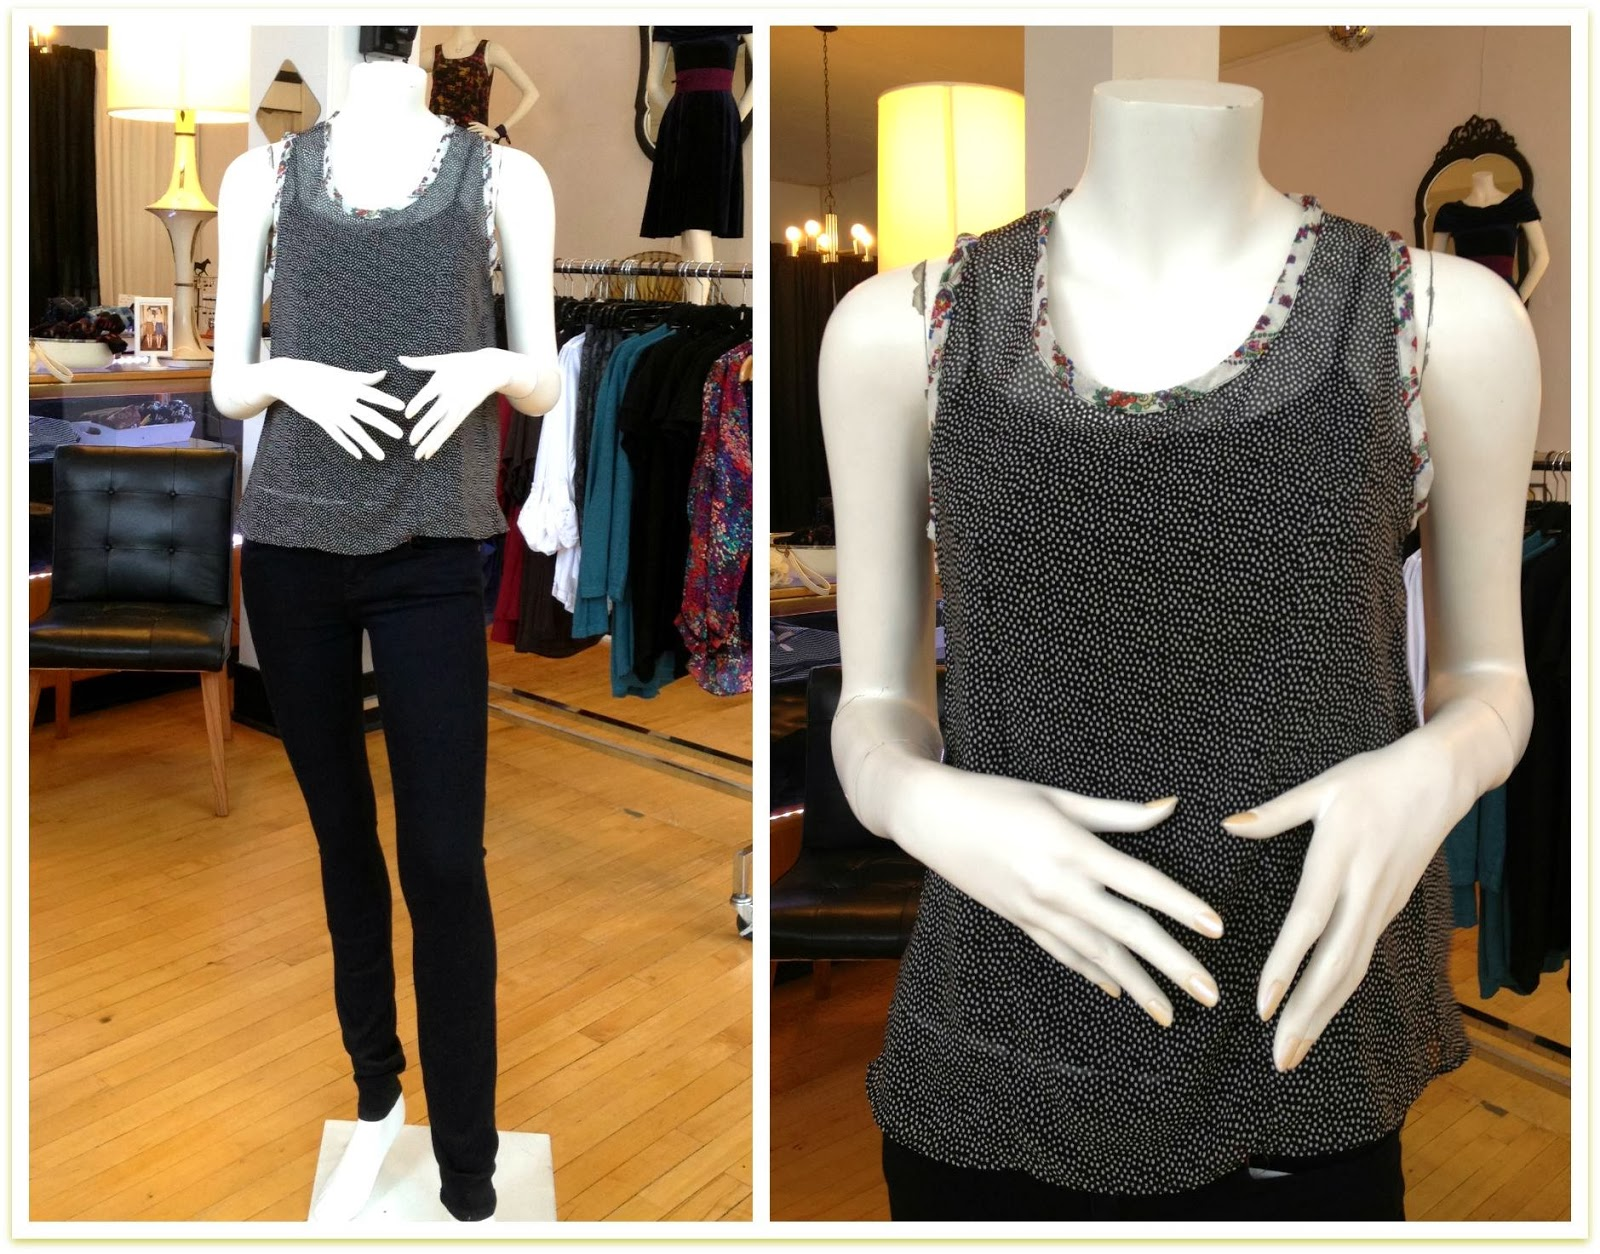 Megan silk to by Sarah Bibb and Lily denim by Level 99 at Folly